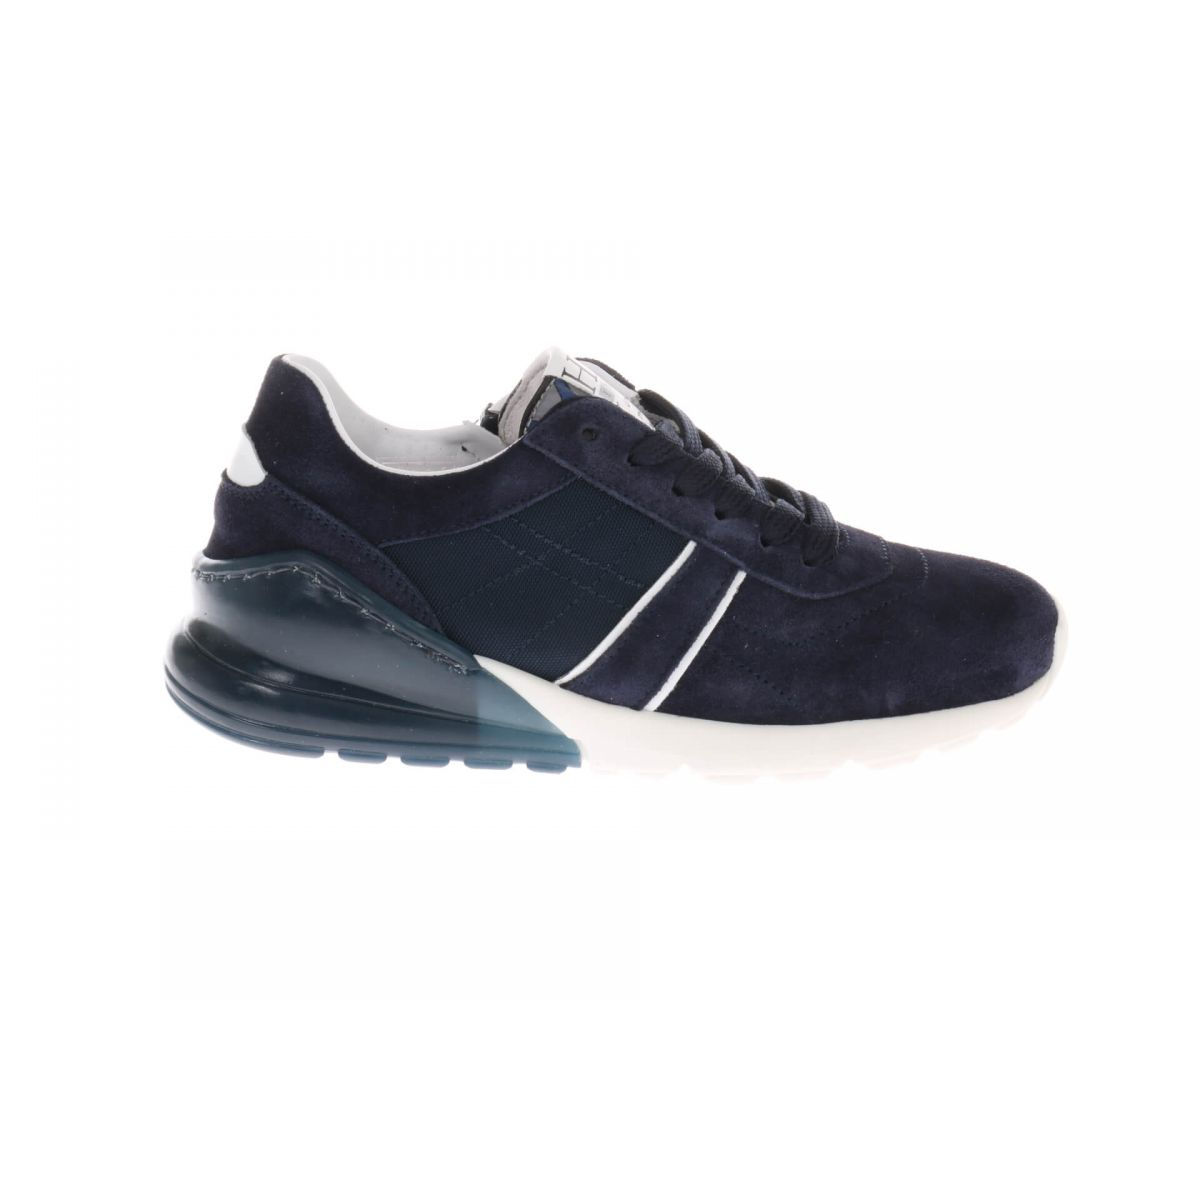 HIP H1339 Sneakers Donkerblauw